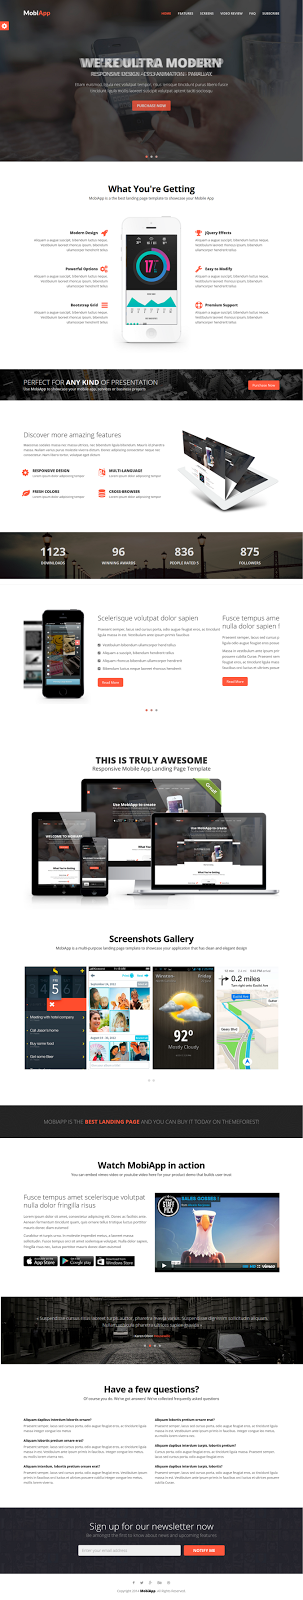 MobiApp - Responsive Mobile App Landing Page